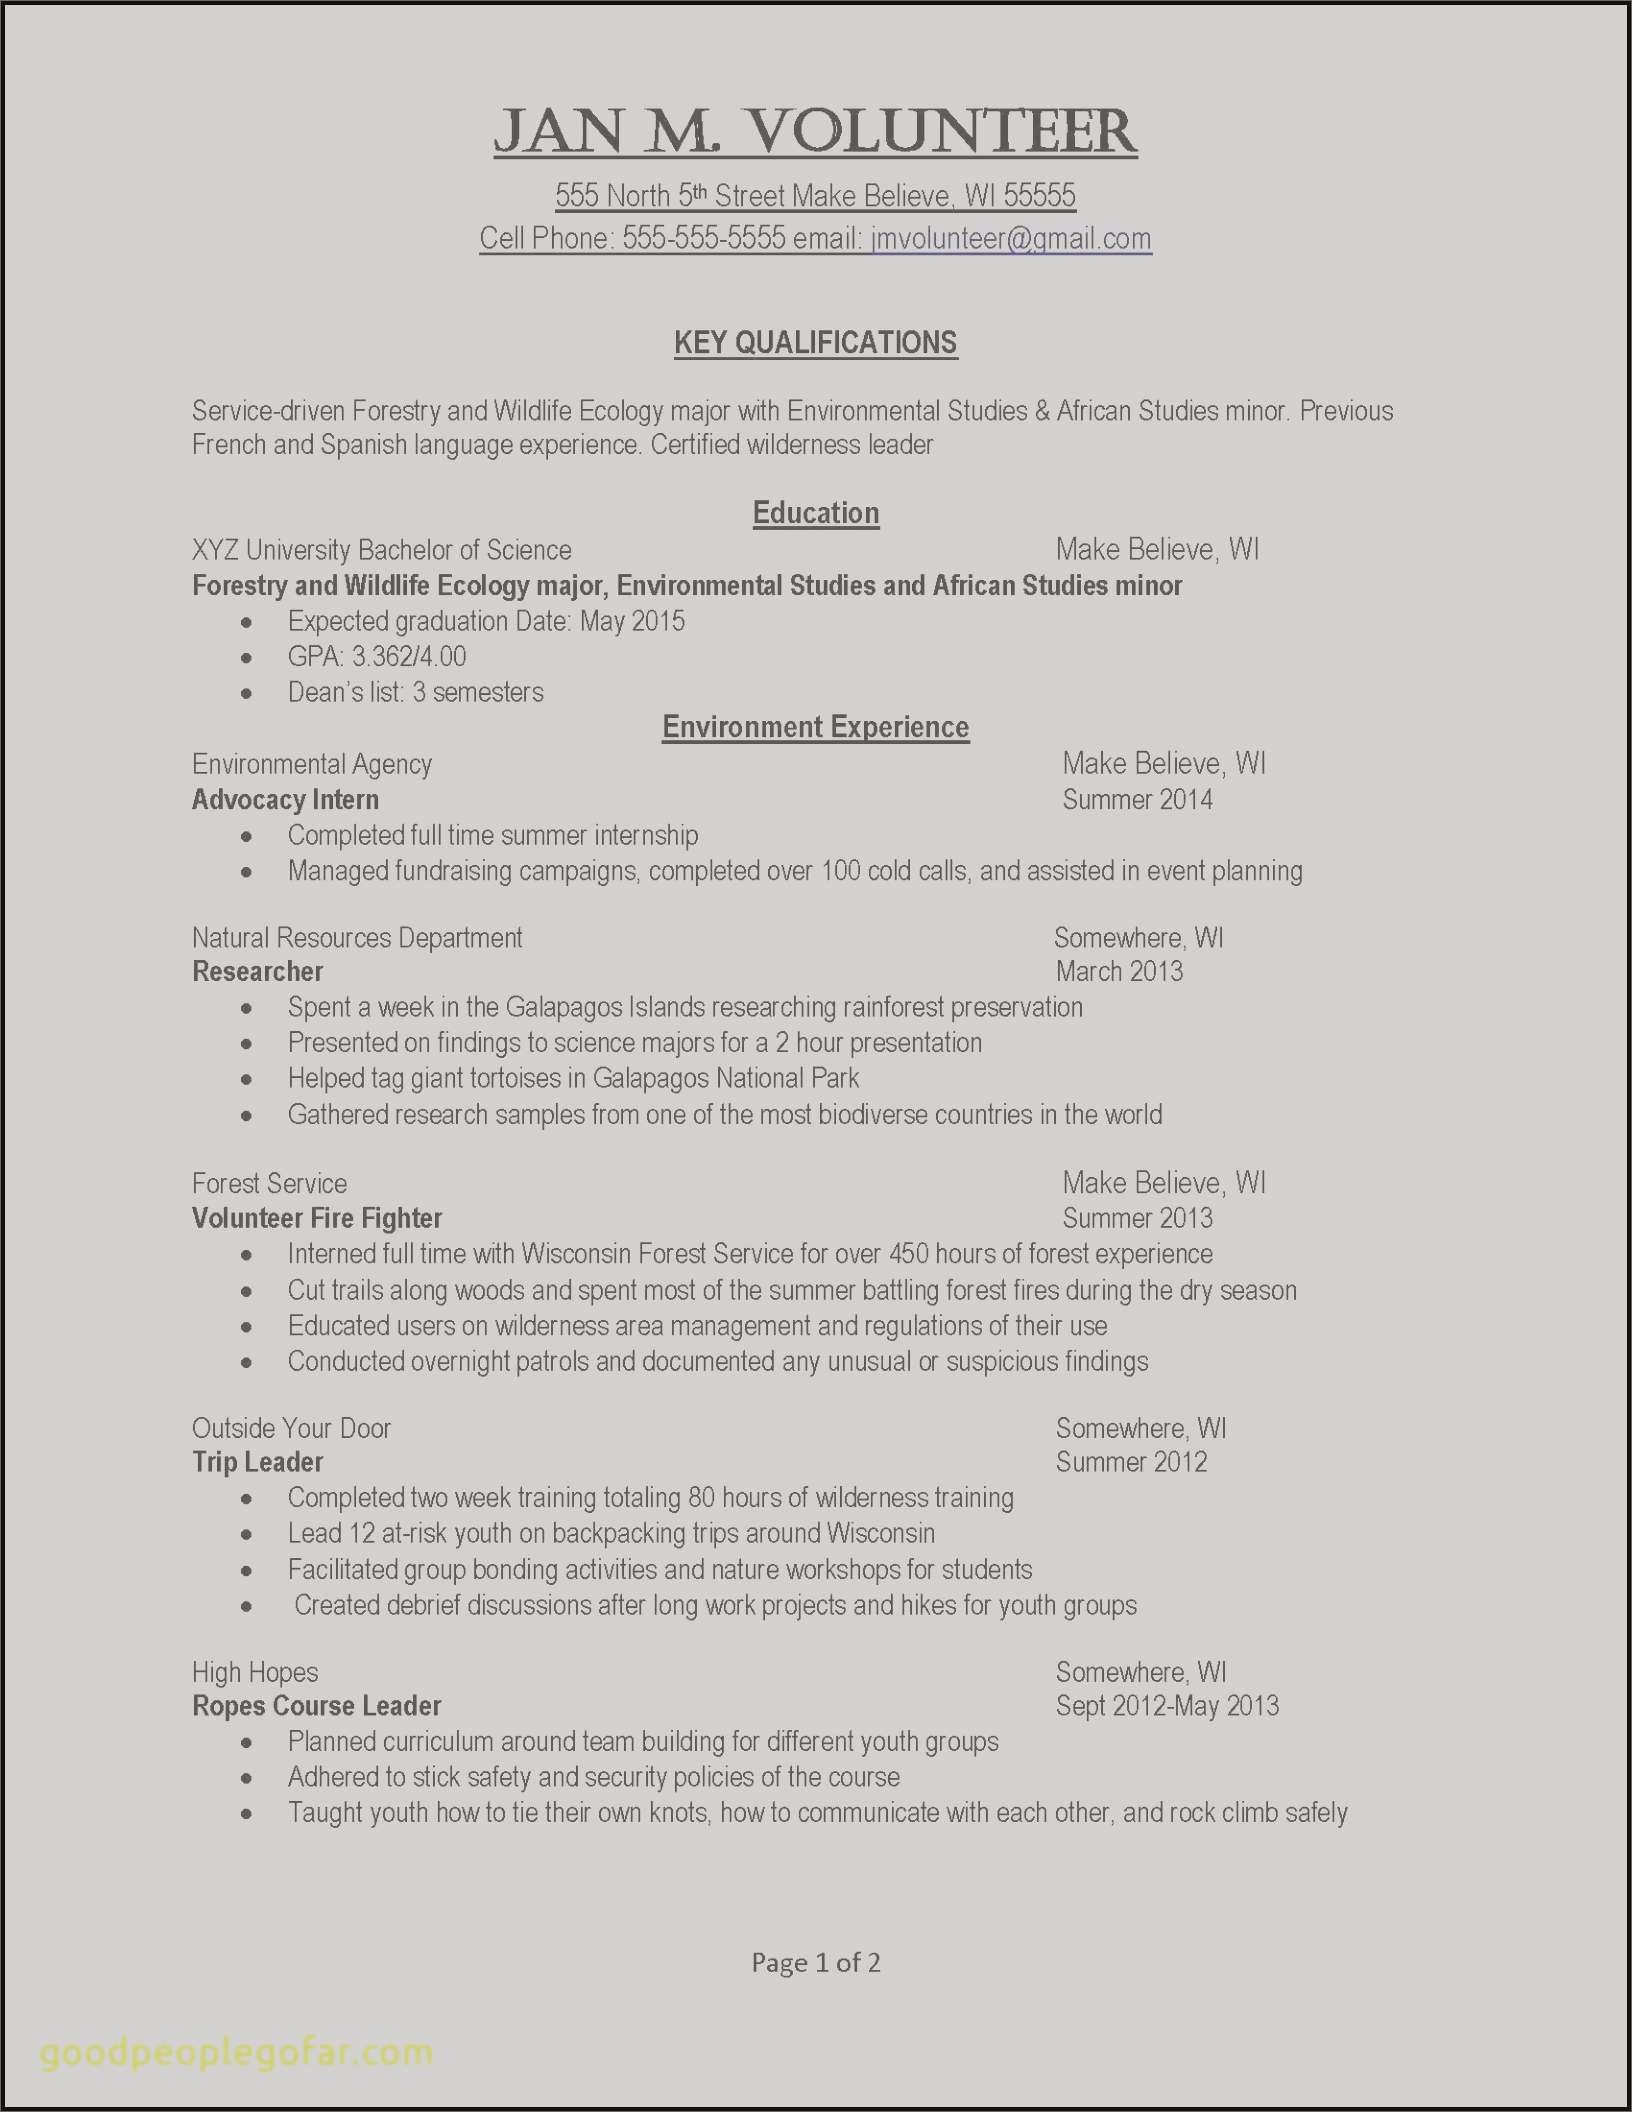 Resume How Many Pages - 1 Page Resume Valid Example Job Resume Awesome Examples Resumes